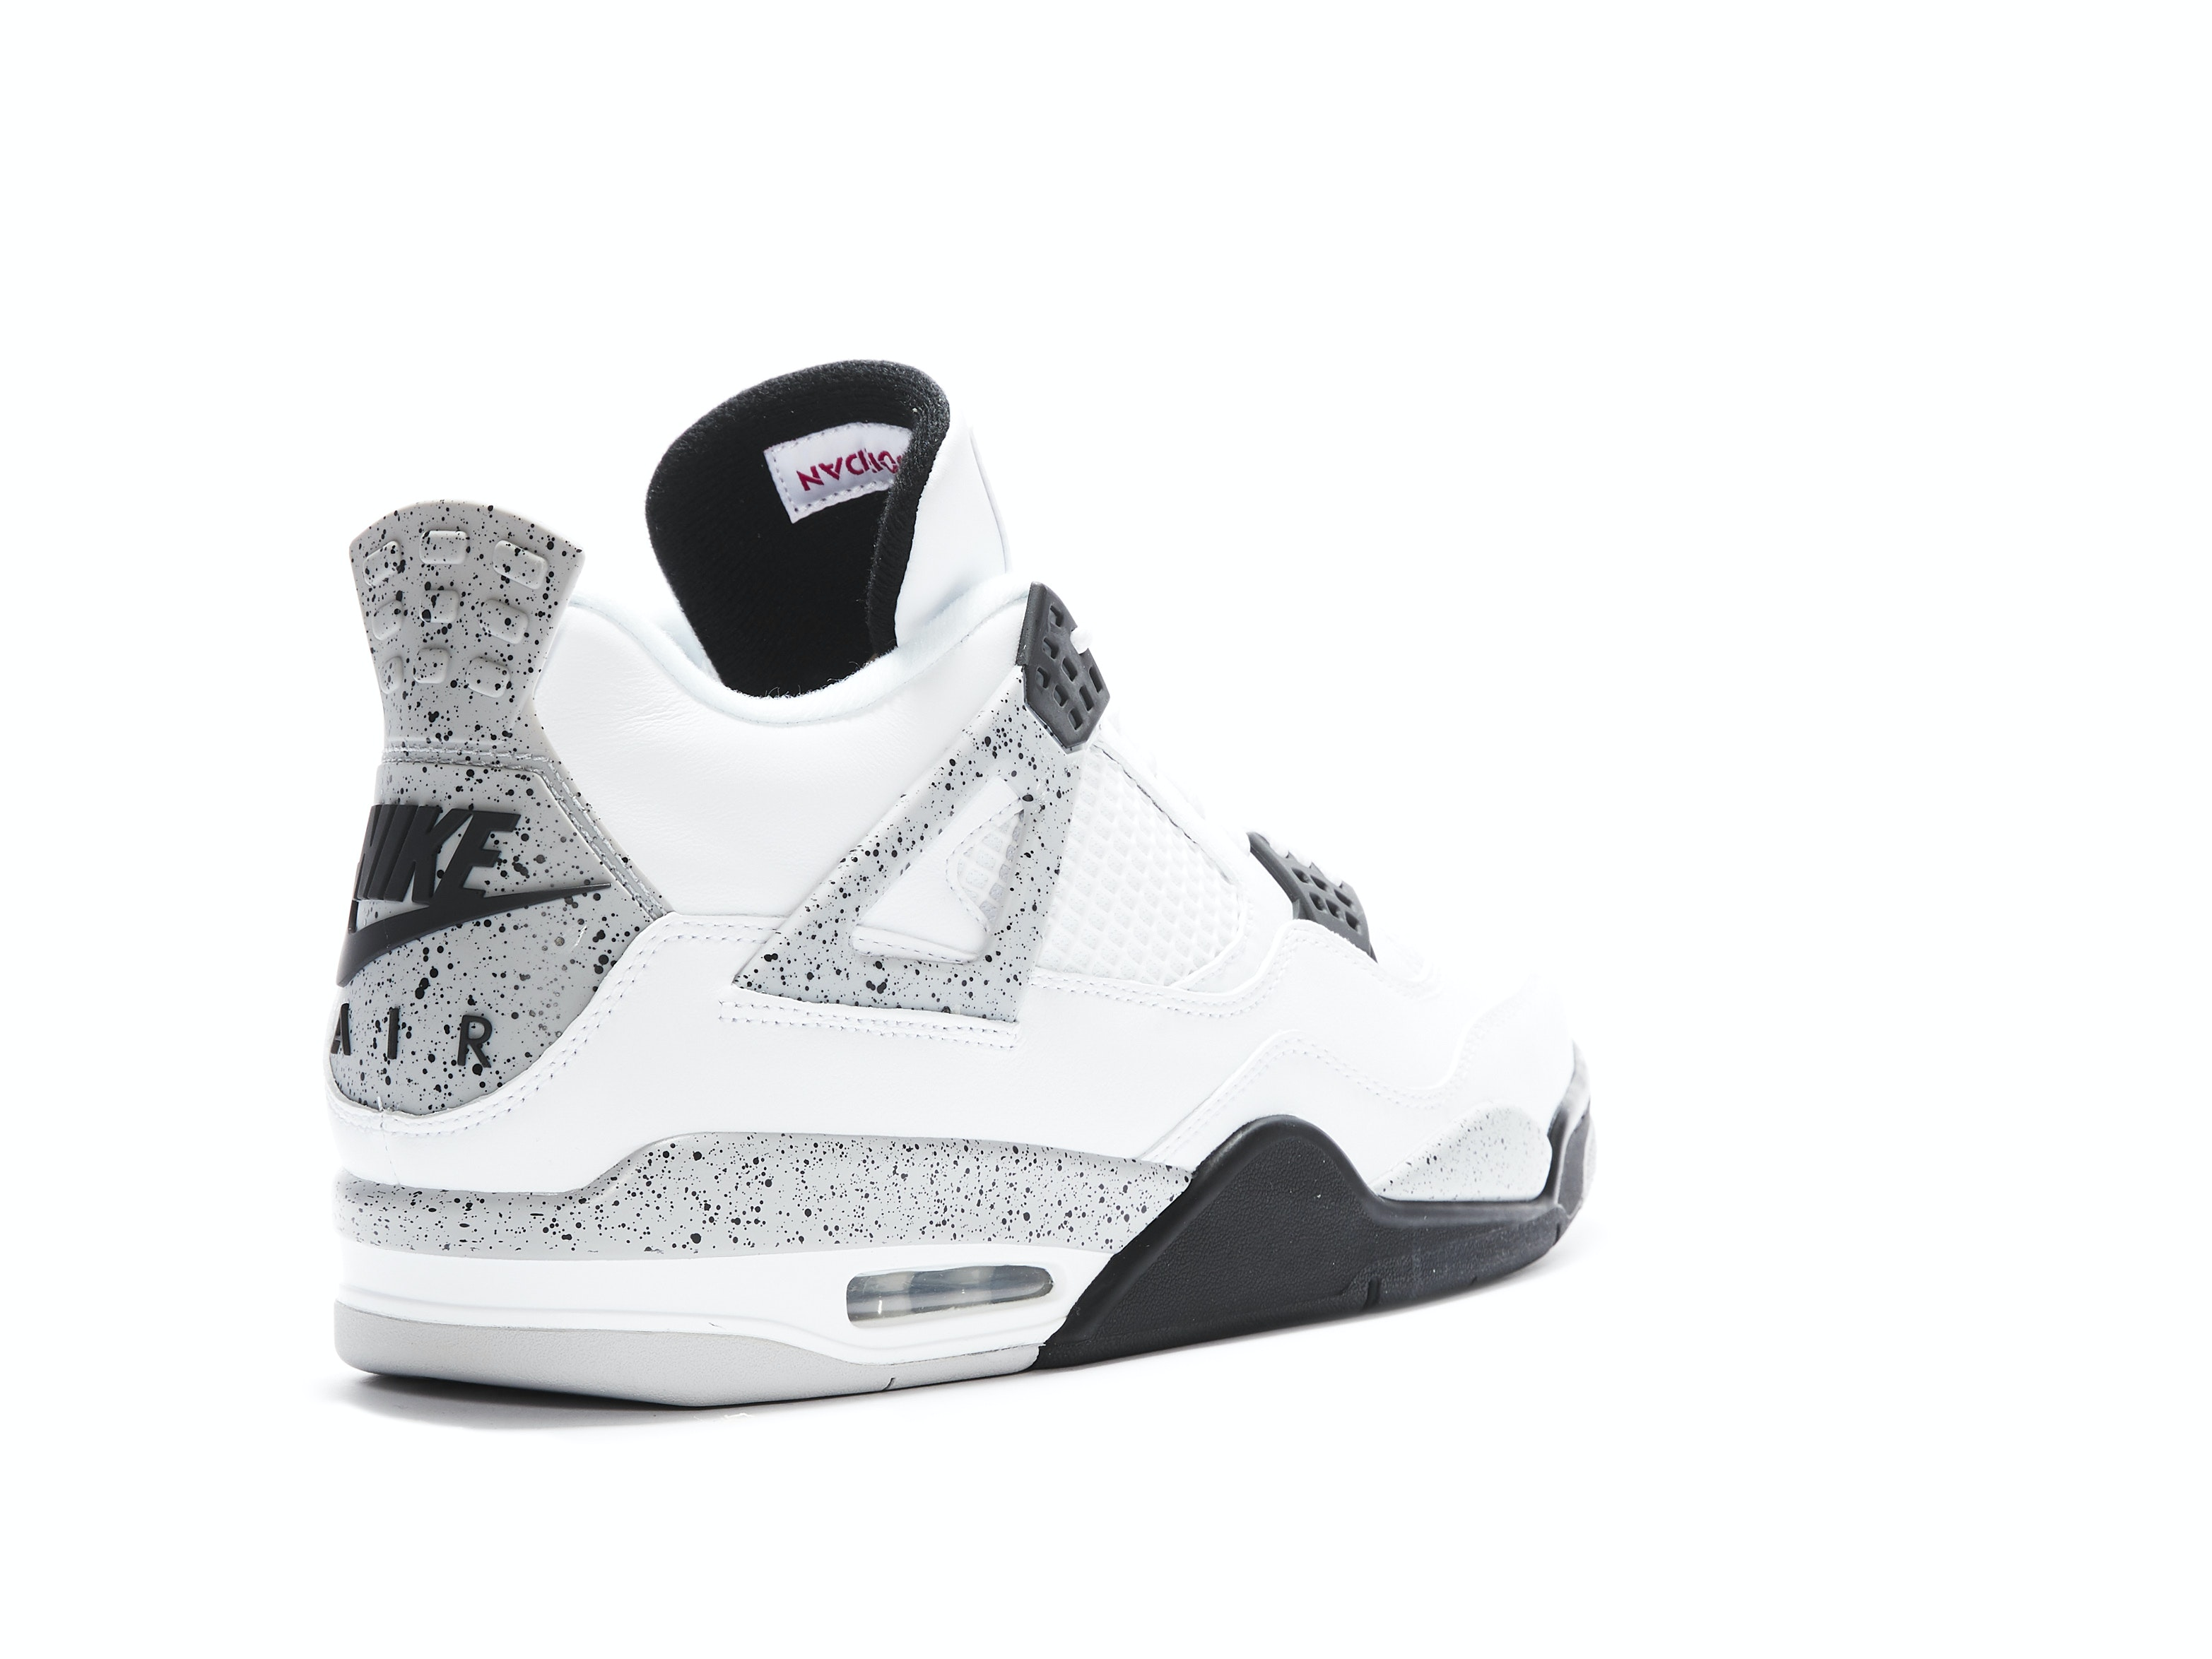 c7c0ee583e24 Air Jordan 4 Retro OG Cement. 100% AuthenticSold out! Air Jordan    840606-192